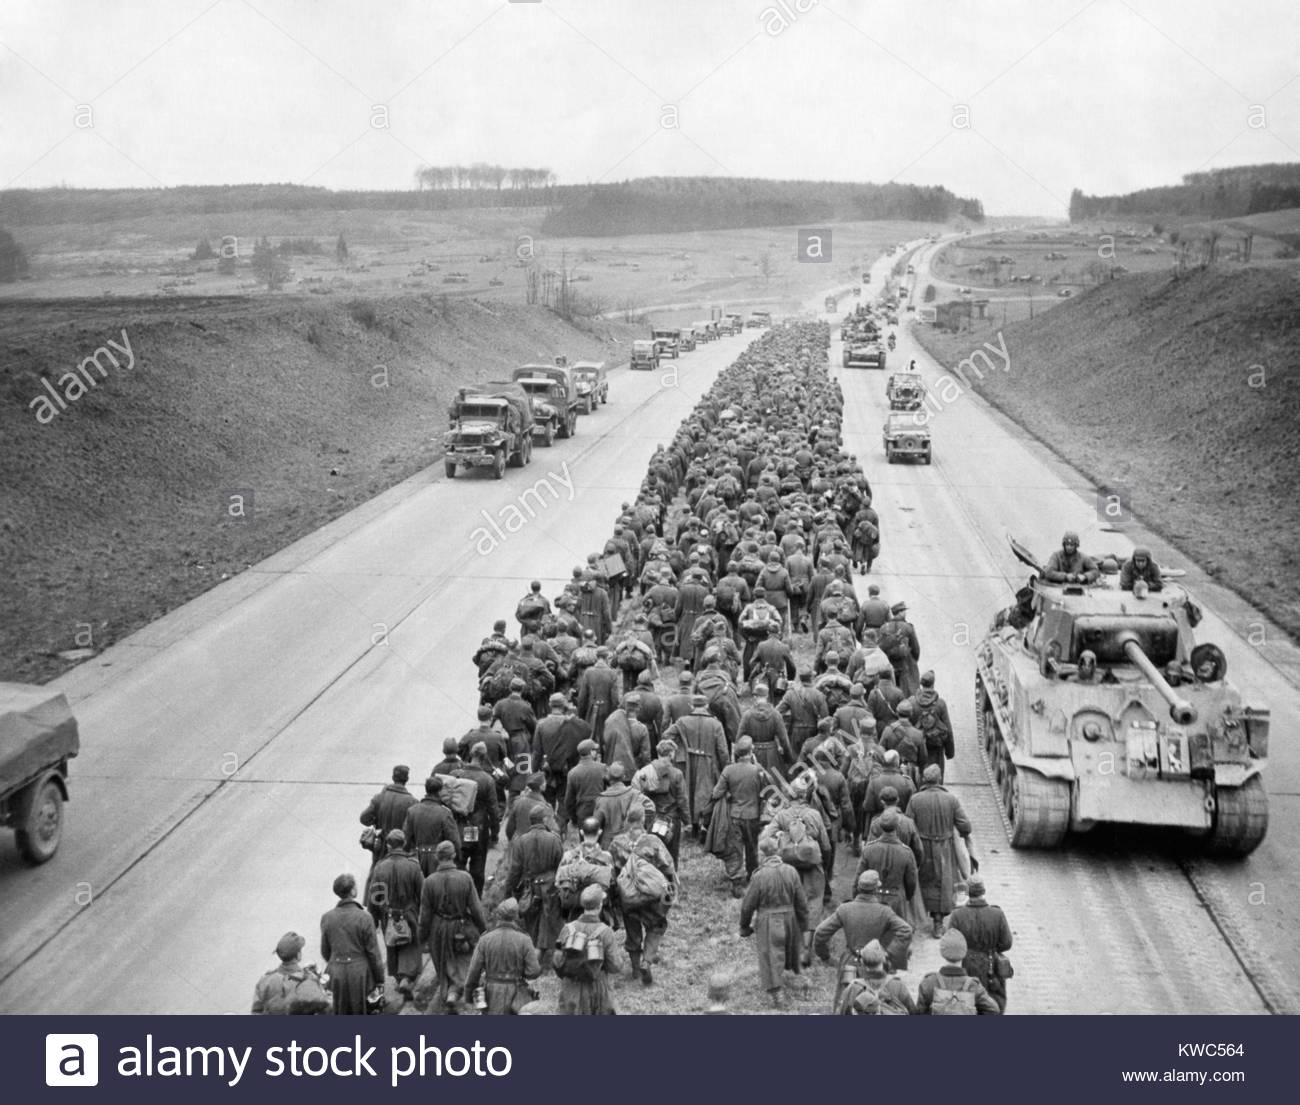 thousands-of-german-prisoners-march-along-the-autobahn-near-giesson-KWC564.jpg